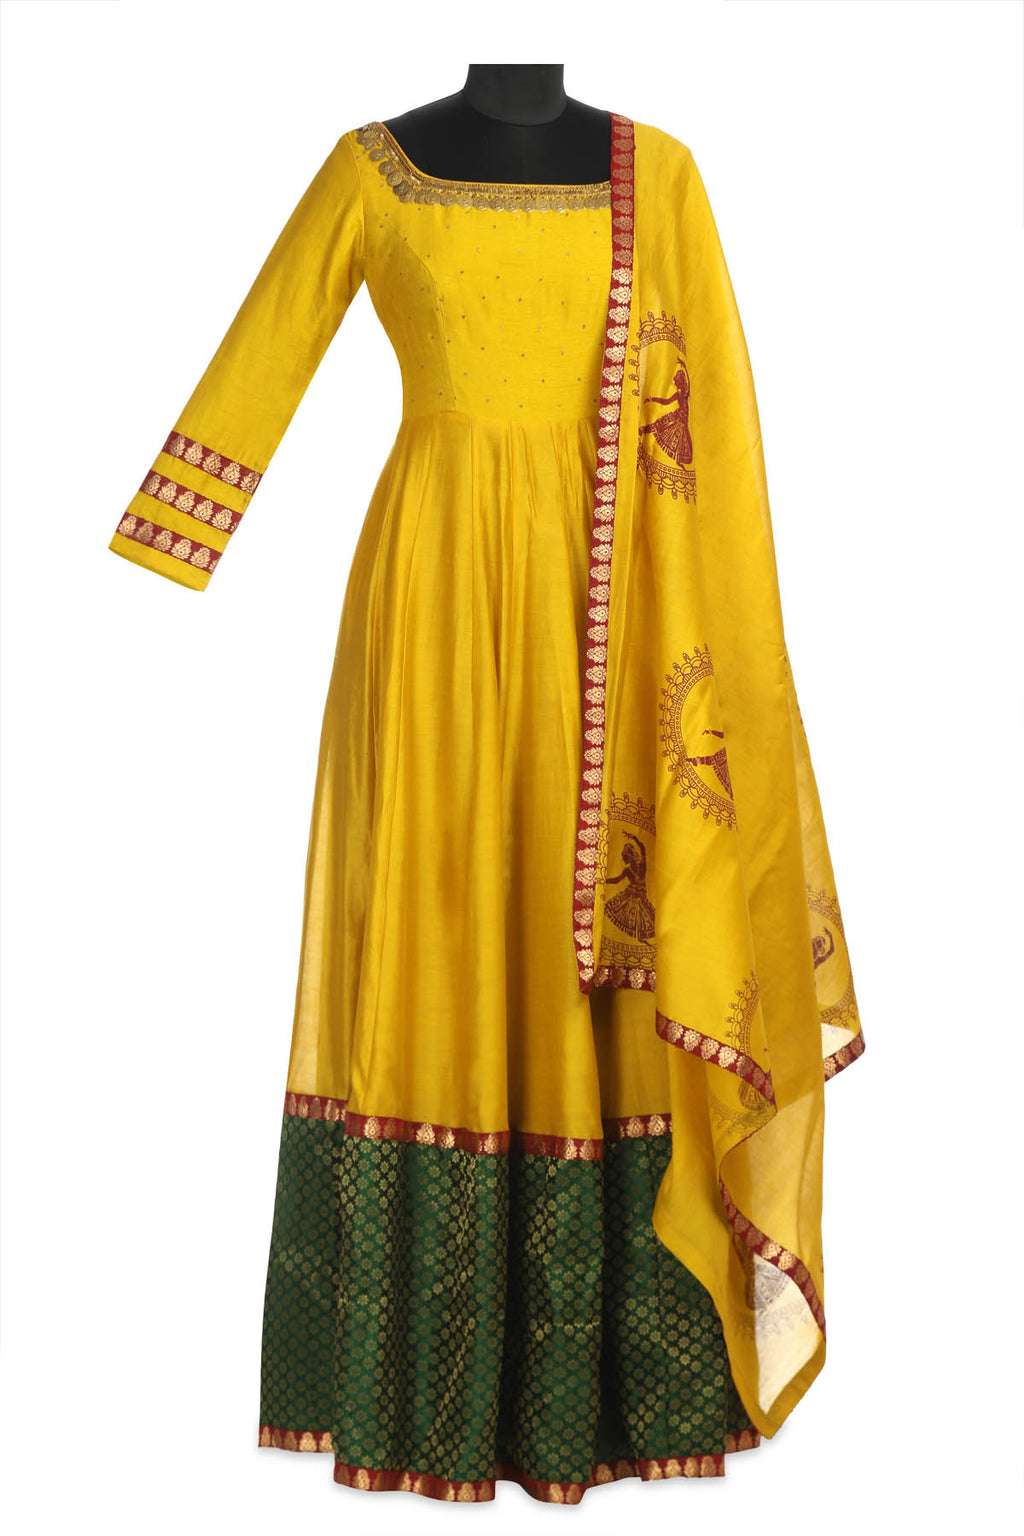 Buy stunning yellow embroidered chanderi Anarkali online in USA with green border and matching dupatta. Shine at weddings and special occasions with beautiful Indian designer Anarkali suits, traditional salwar suits, sharara suits, designer lehengas from Pure Elegance Indian clothing store in USA.-full view